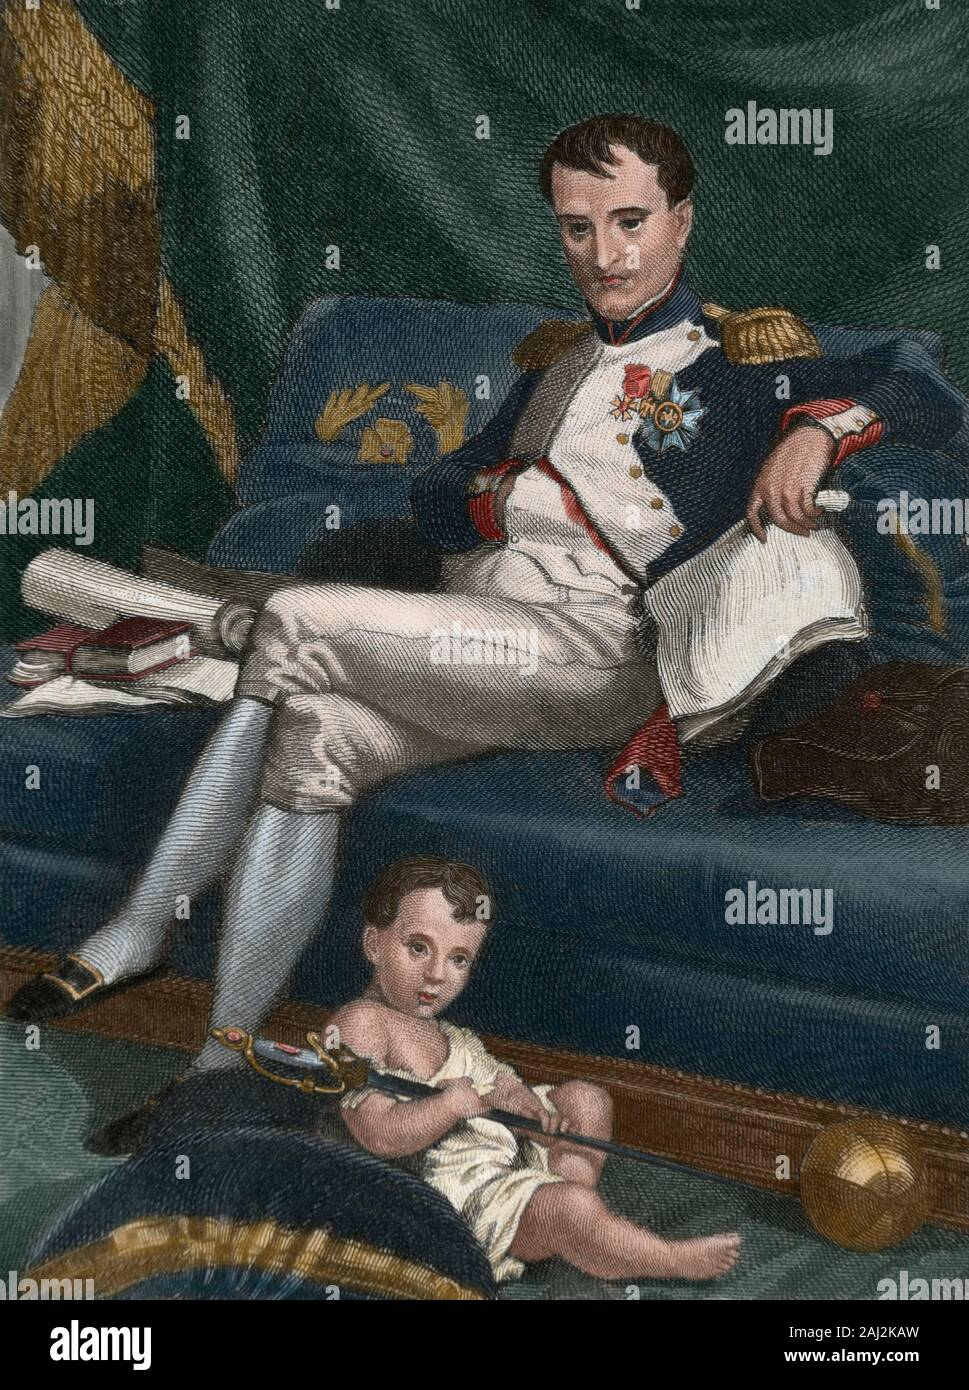 Napoleon I (Napoleon Bonaparte) (Ajaccio, Corsica,1769-St. Helena Island, 1821). French military leader and emperor of The French (1804-1815). Napoleon I and his son Napoleon II (1811-1832), called King of Rome. He never reigned. Engraving, Later colouration. Stock Photo